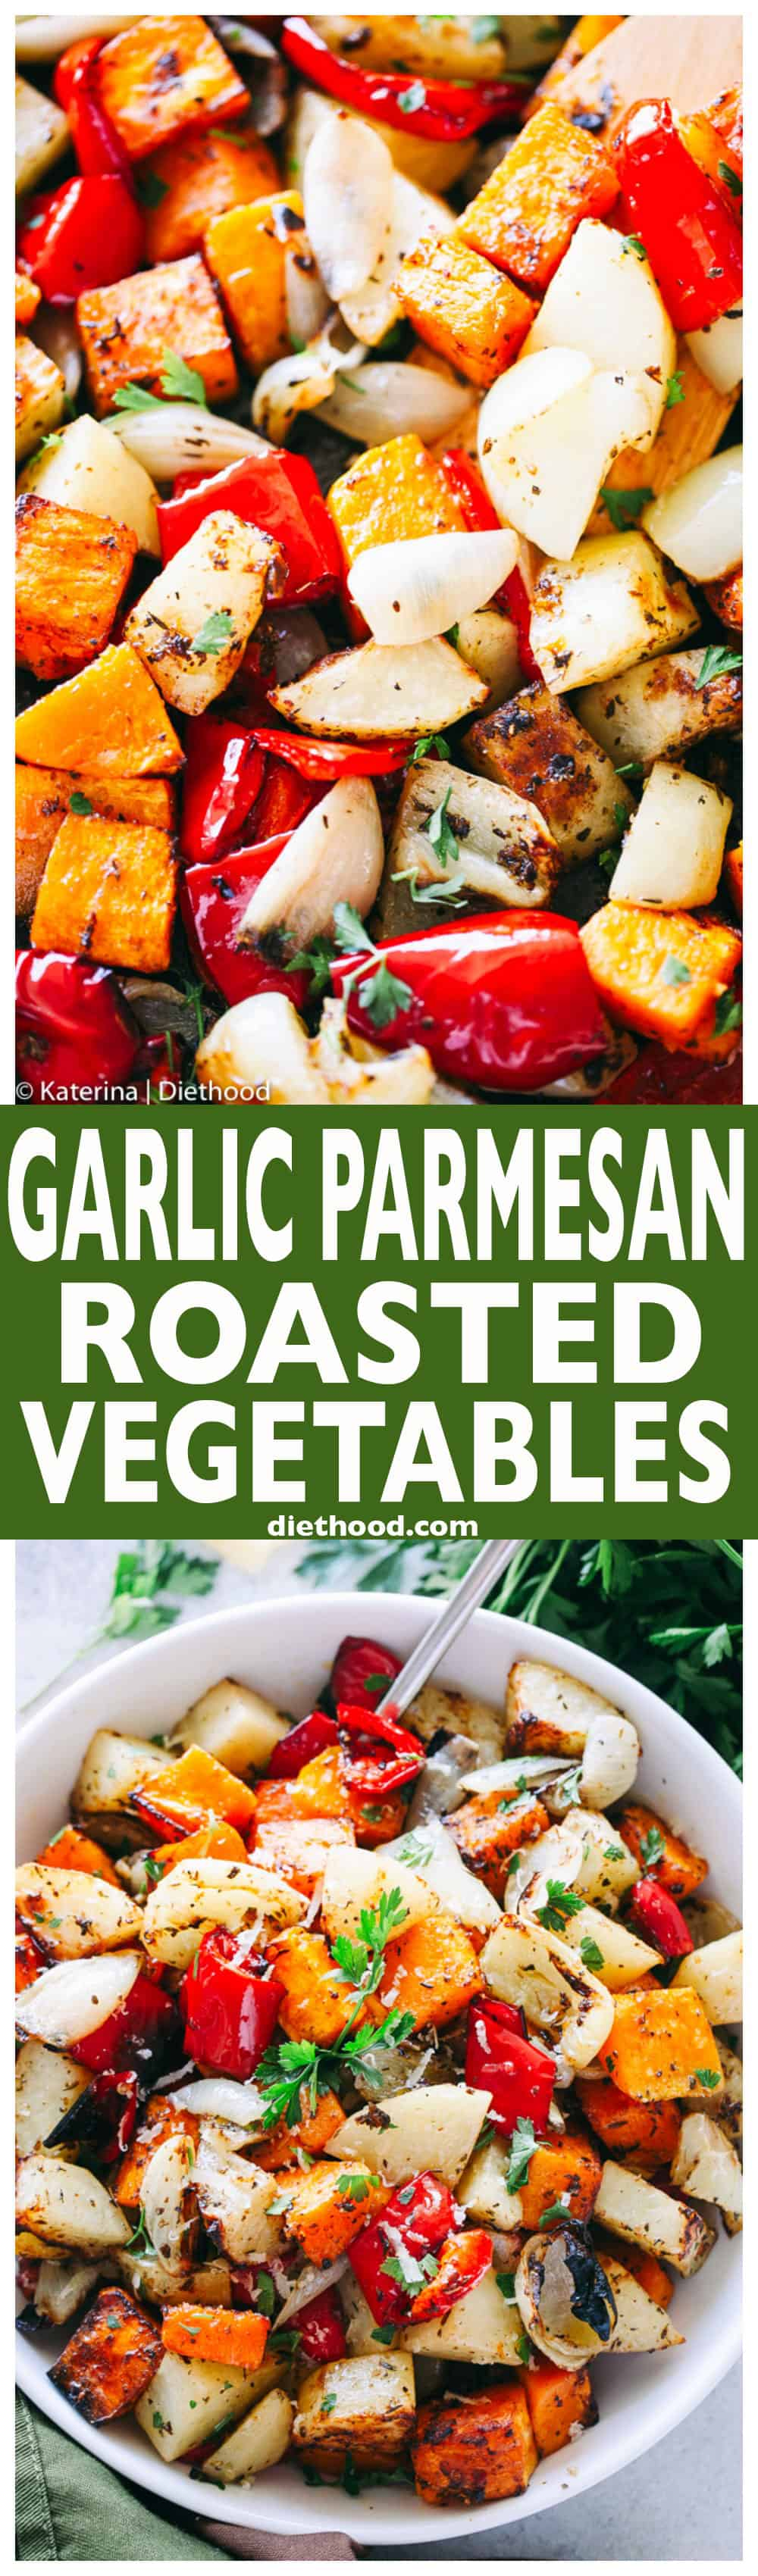 Garlic Parmesan Roasted Vegetables - Butternut squash, potatoes, peppers, and onions tossed in the best garlic parmesan dressing prepared with balsamic vinegar, herbs, seasonings, garlic, and olive oil.